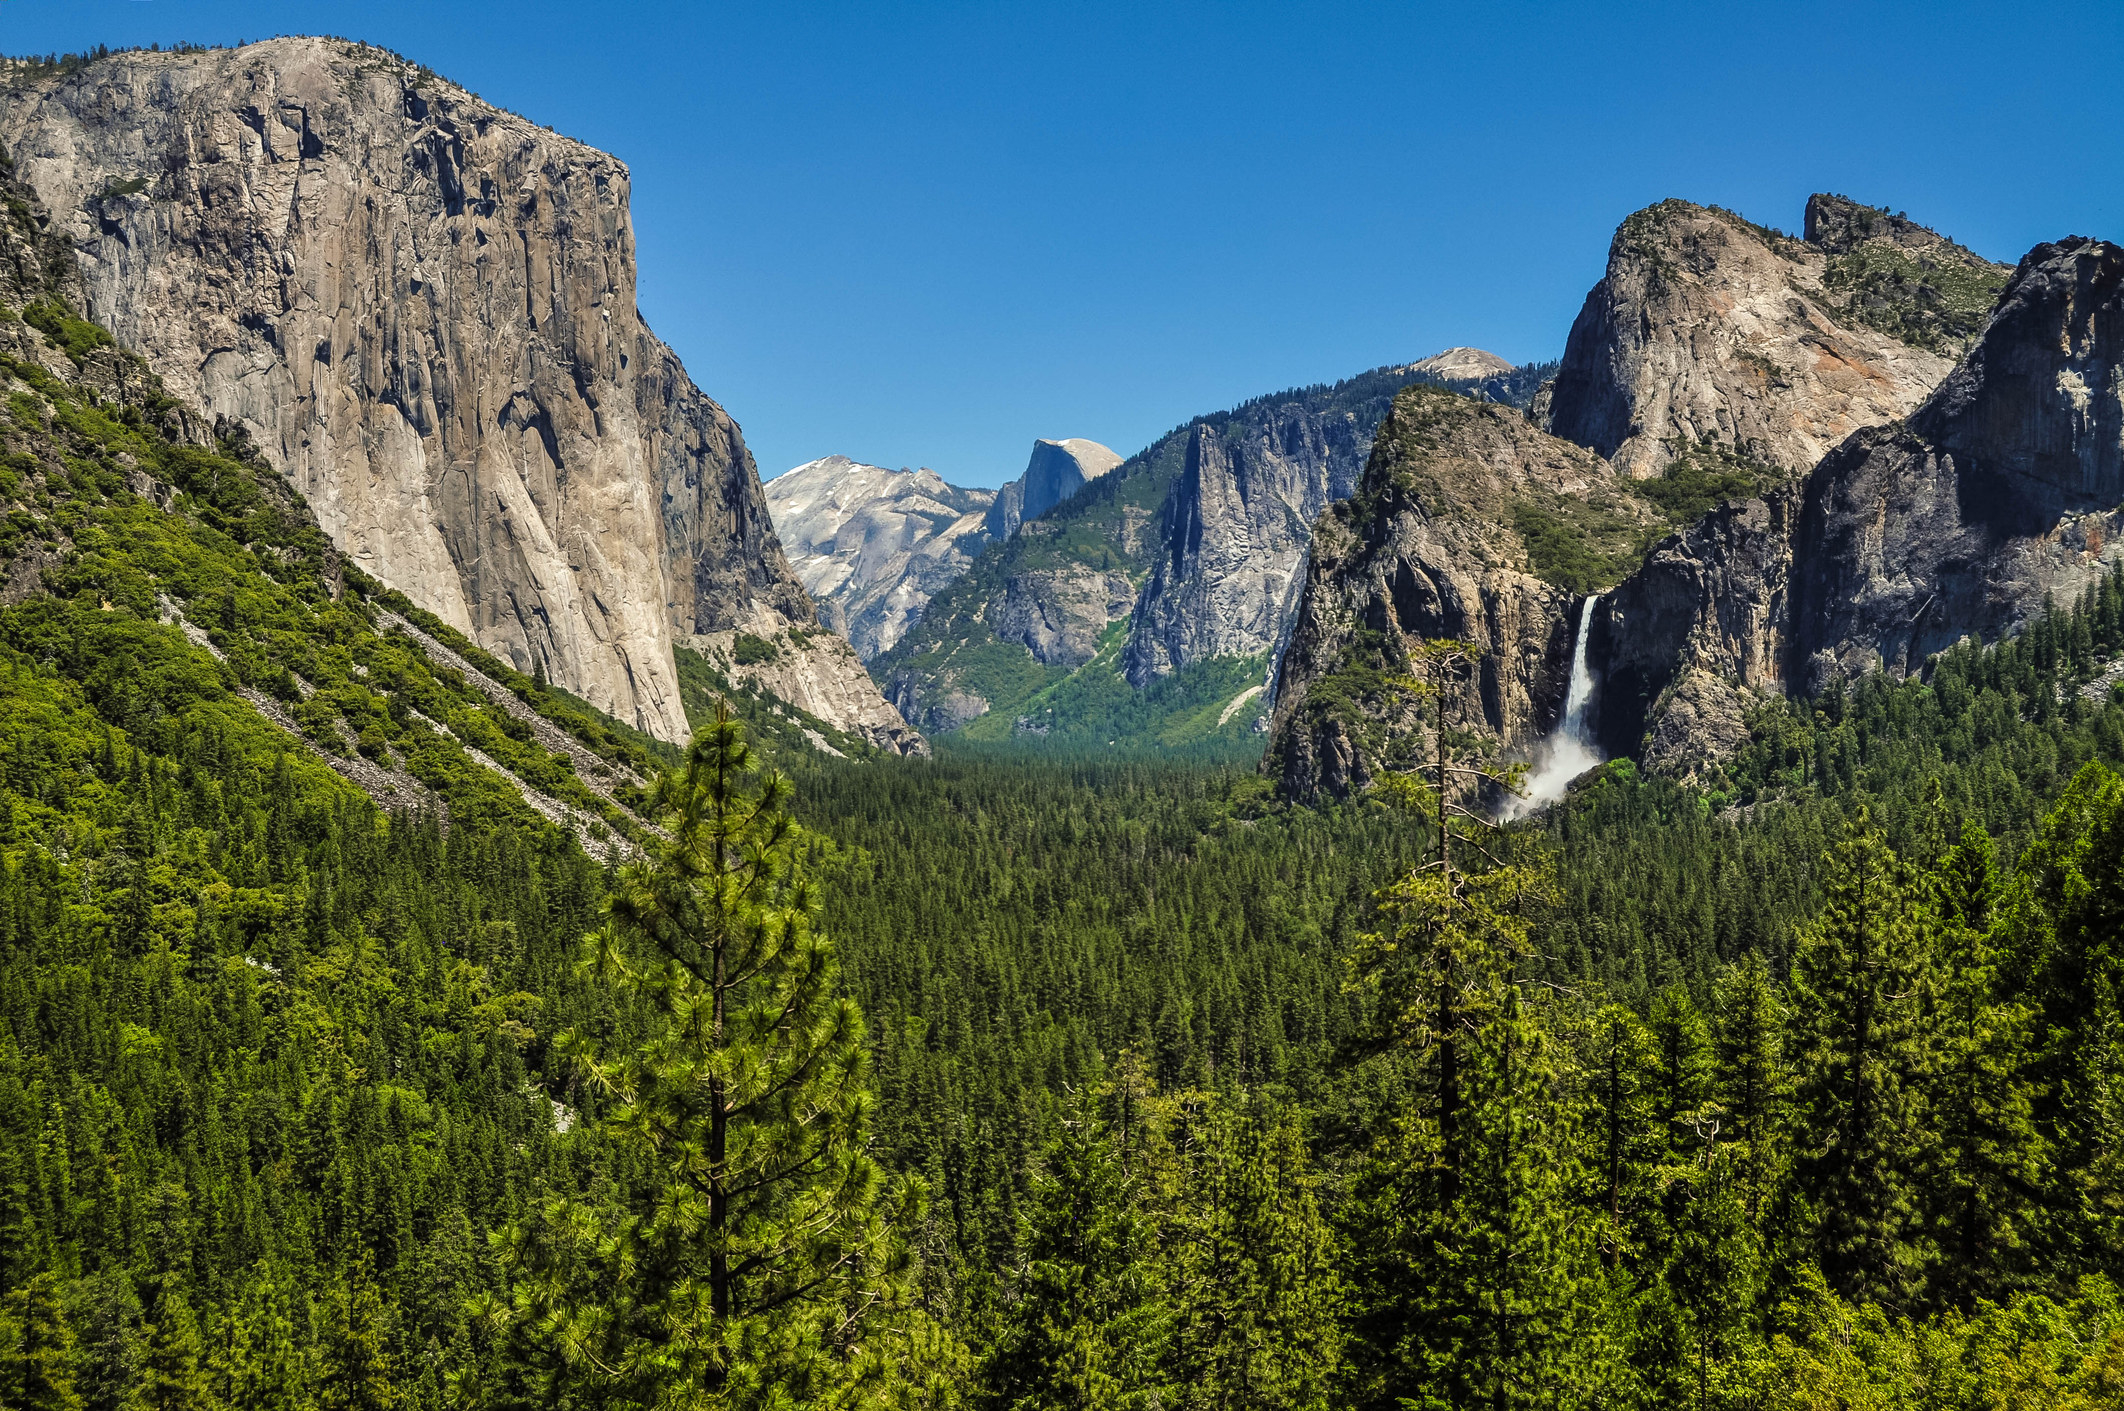 Yosemite's mountain range and forest floor with a waterfall in the background and a blue sky above.